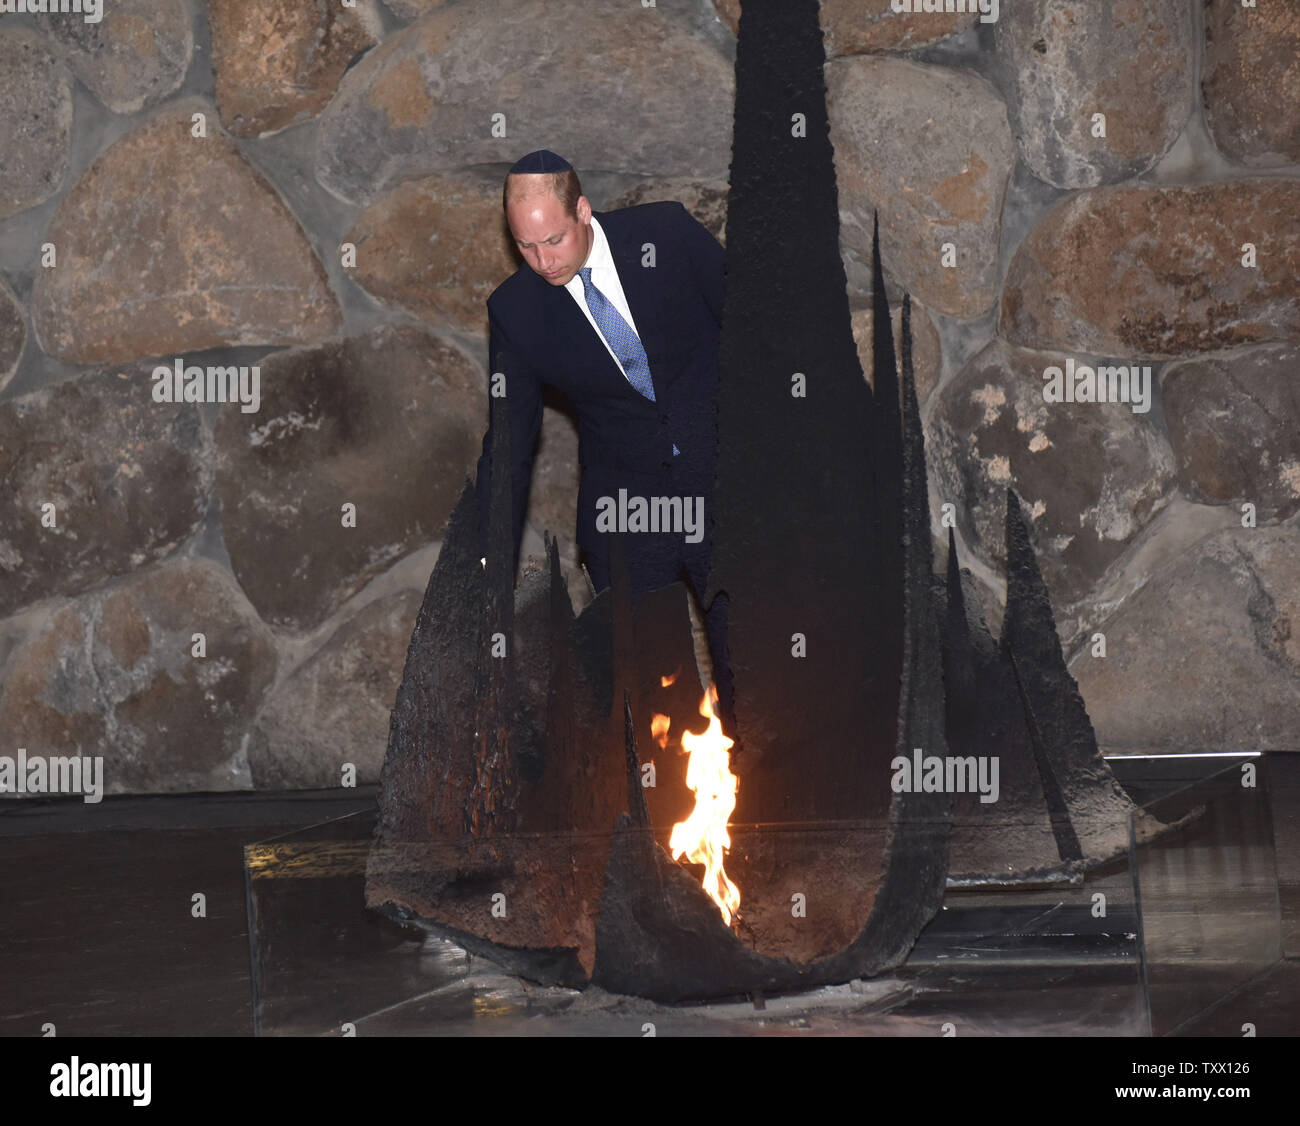 Prince William, the Duke of Cambridge, rekindles the eternal flame during a memorial ceremony  in the Hall of Remembrance at Yad Vashem, the World Holocaust Remembrance Center, in Jerusalem, Israel, June 26, 2018.  Photo by Debbie Hill/UPI - Stock Image